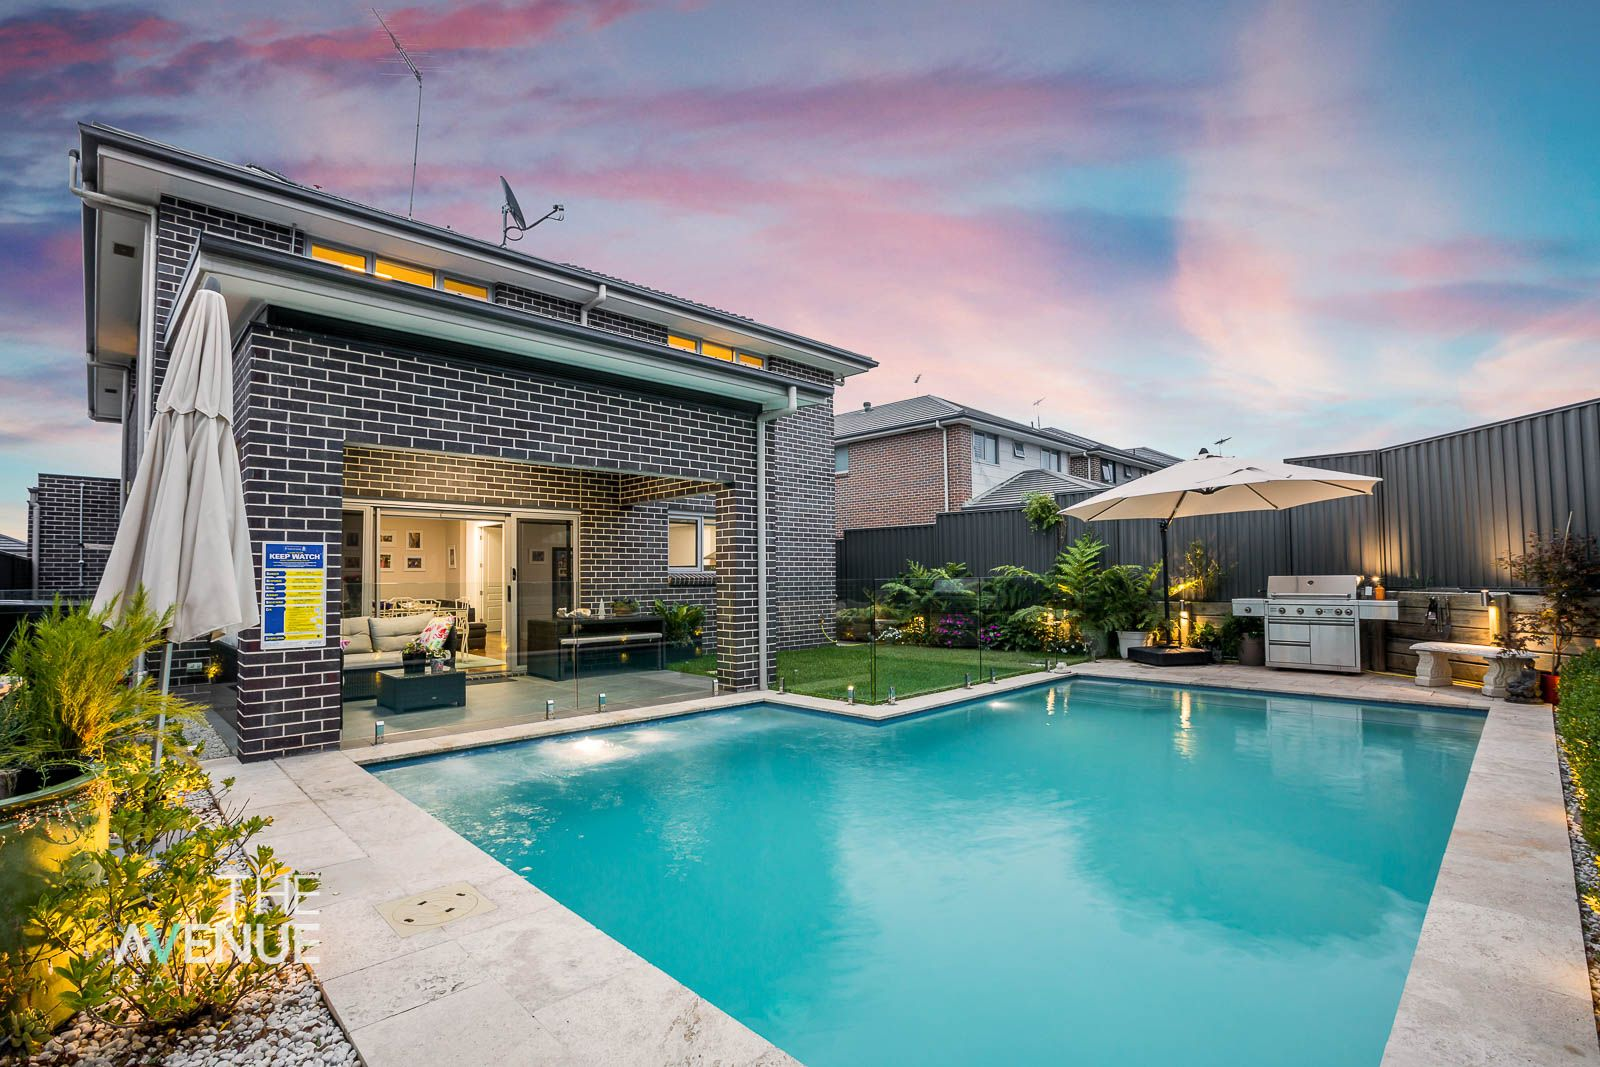 15 Bel Air Drive, Kellyville NSW 2155